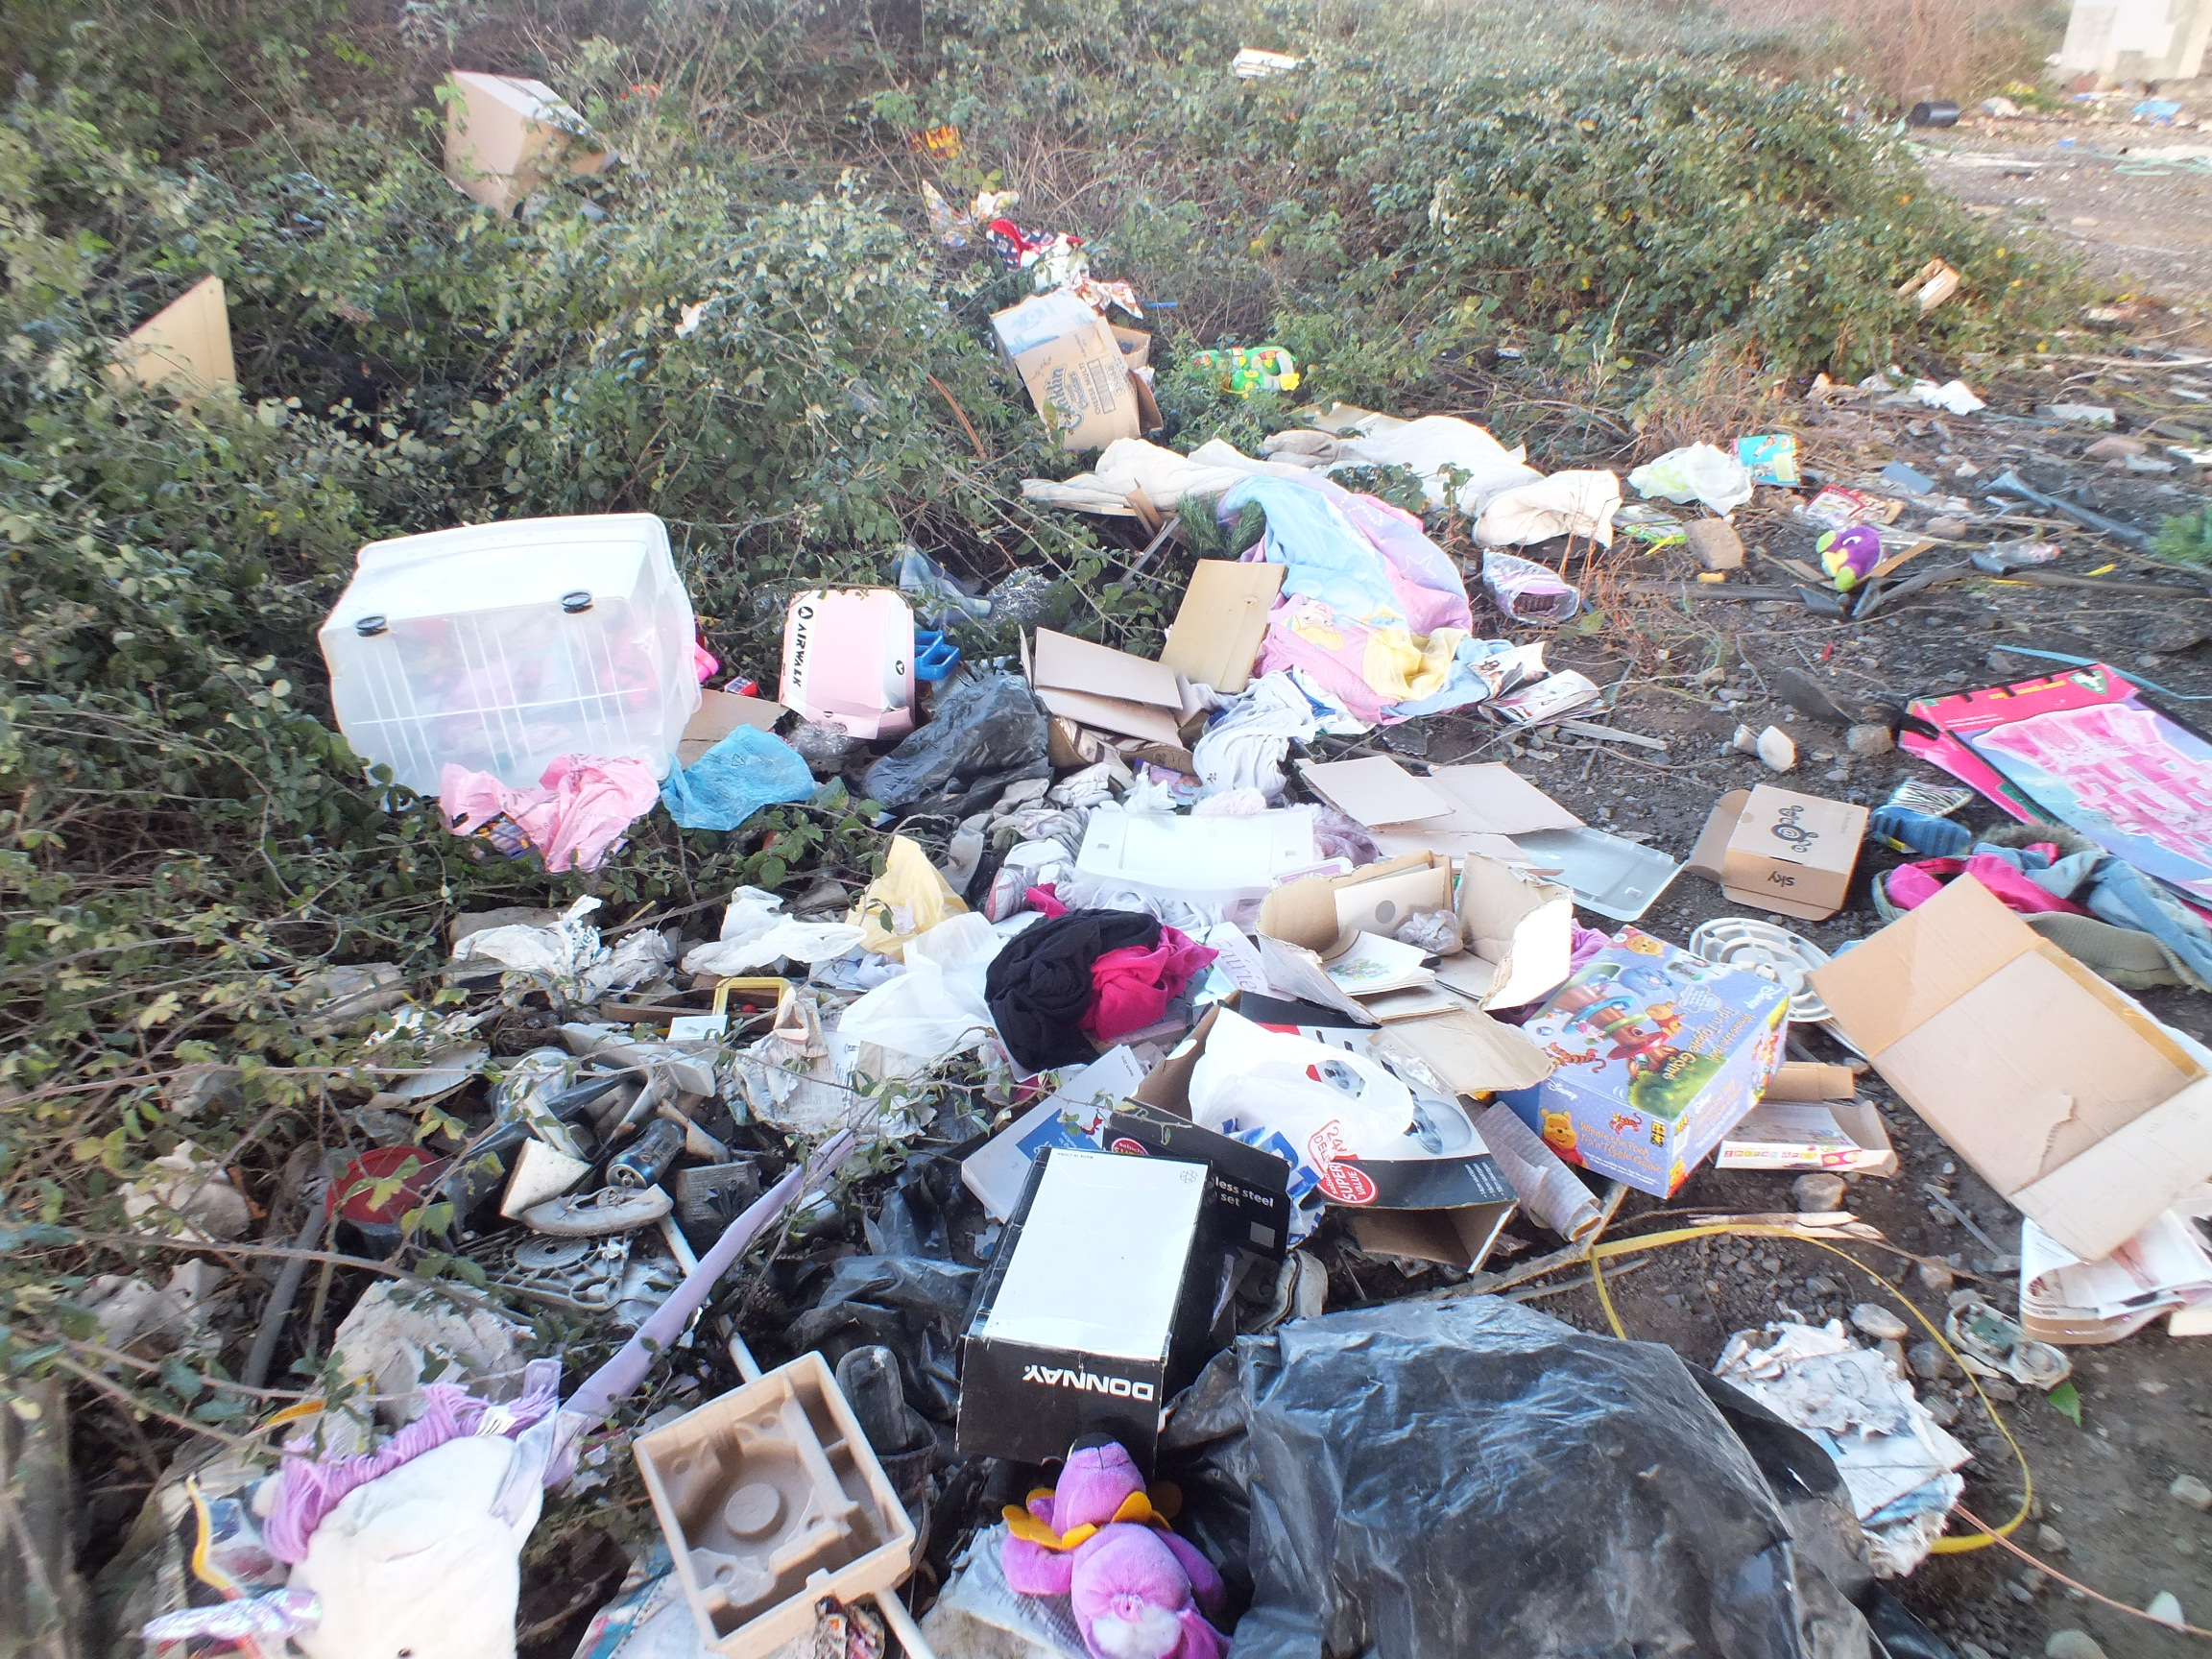 The flytipped rubbish. Photo: submitted.